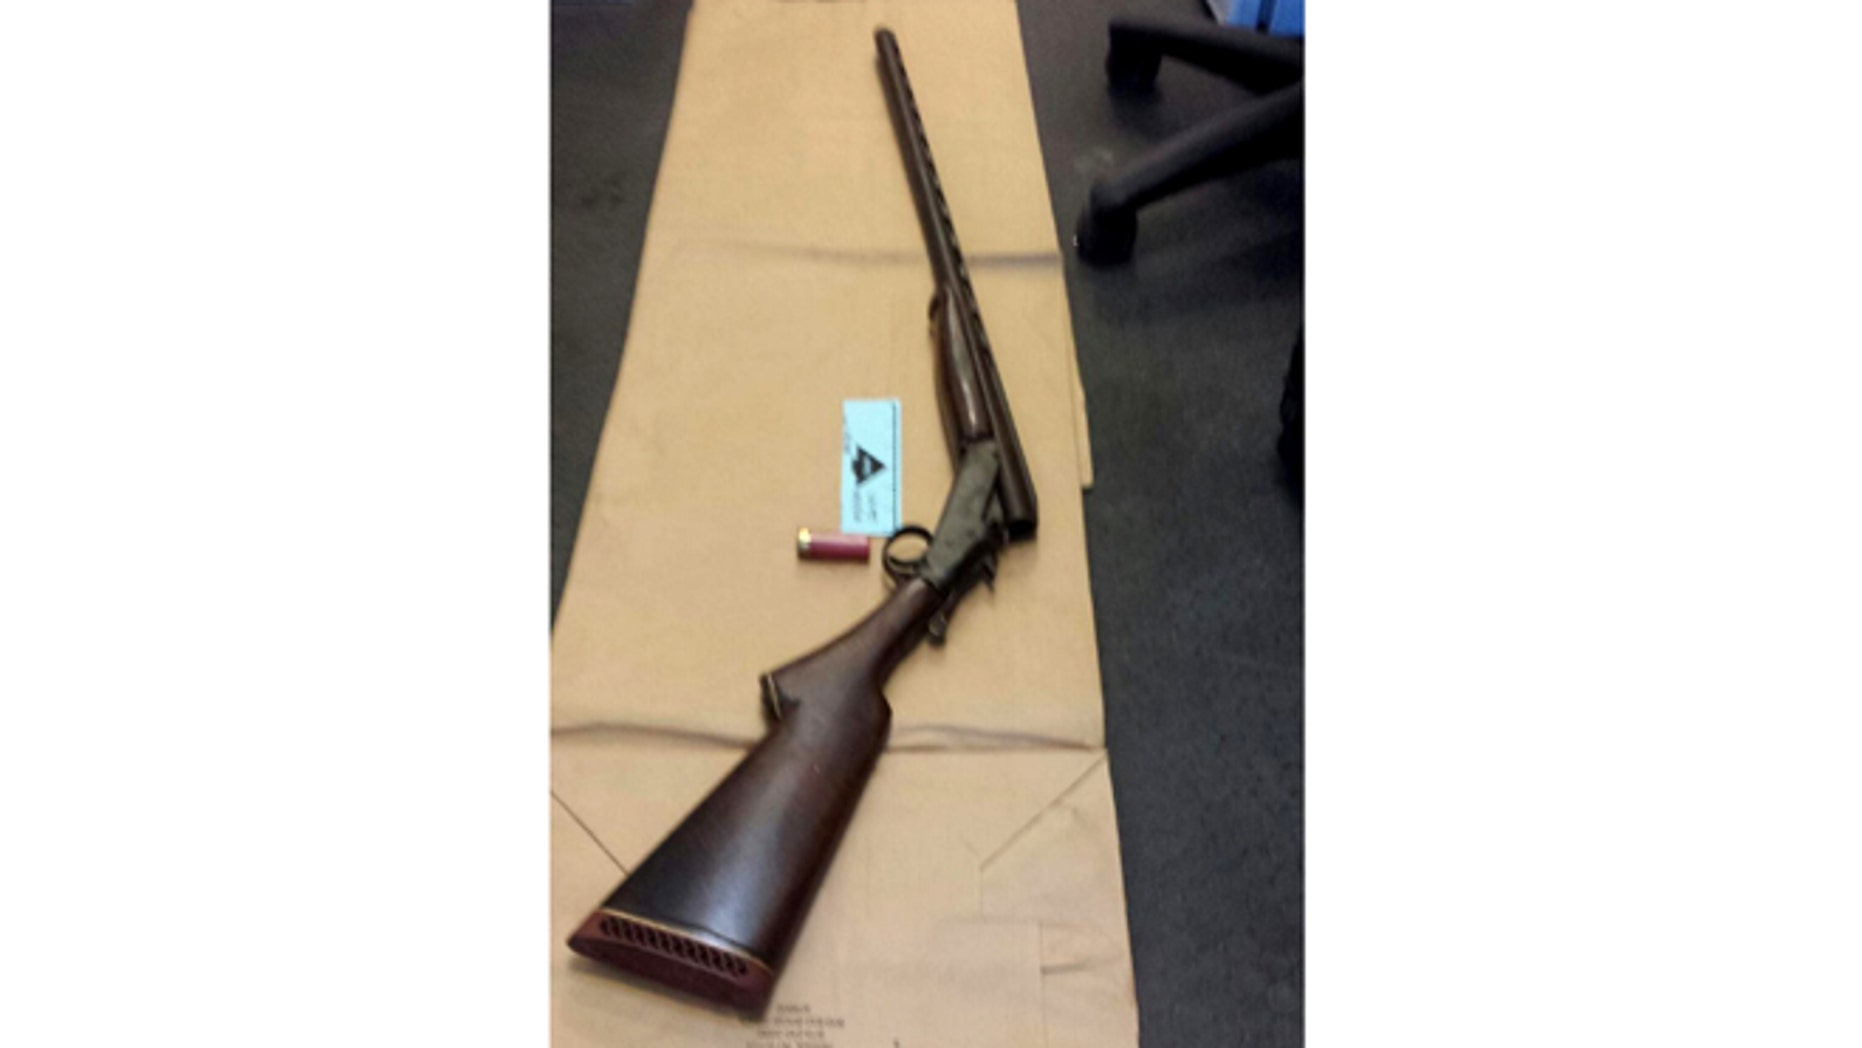 Apr. 12, 2014: This photo provided by the New York City Police Department shows a shotgun displayed on the floor of a police precinct in New York.